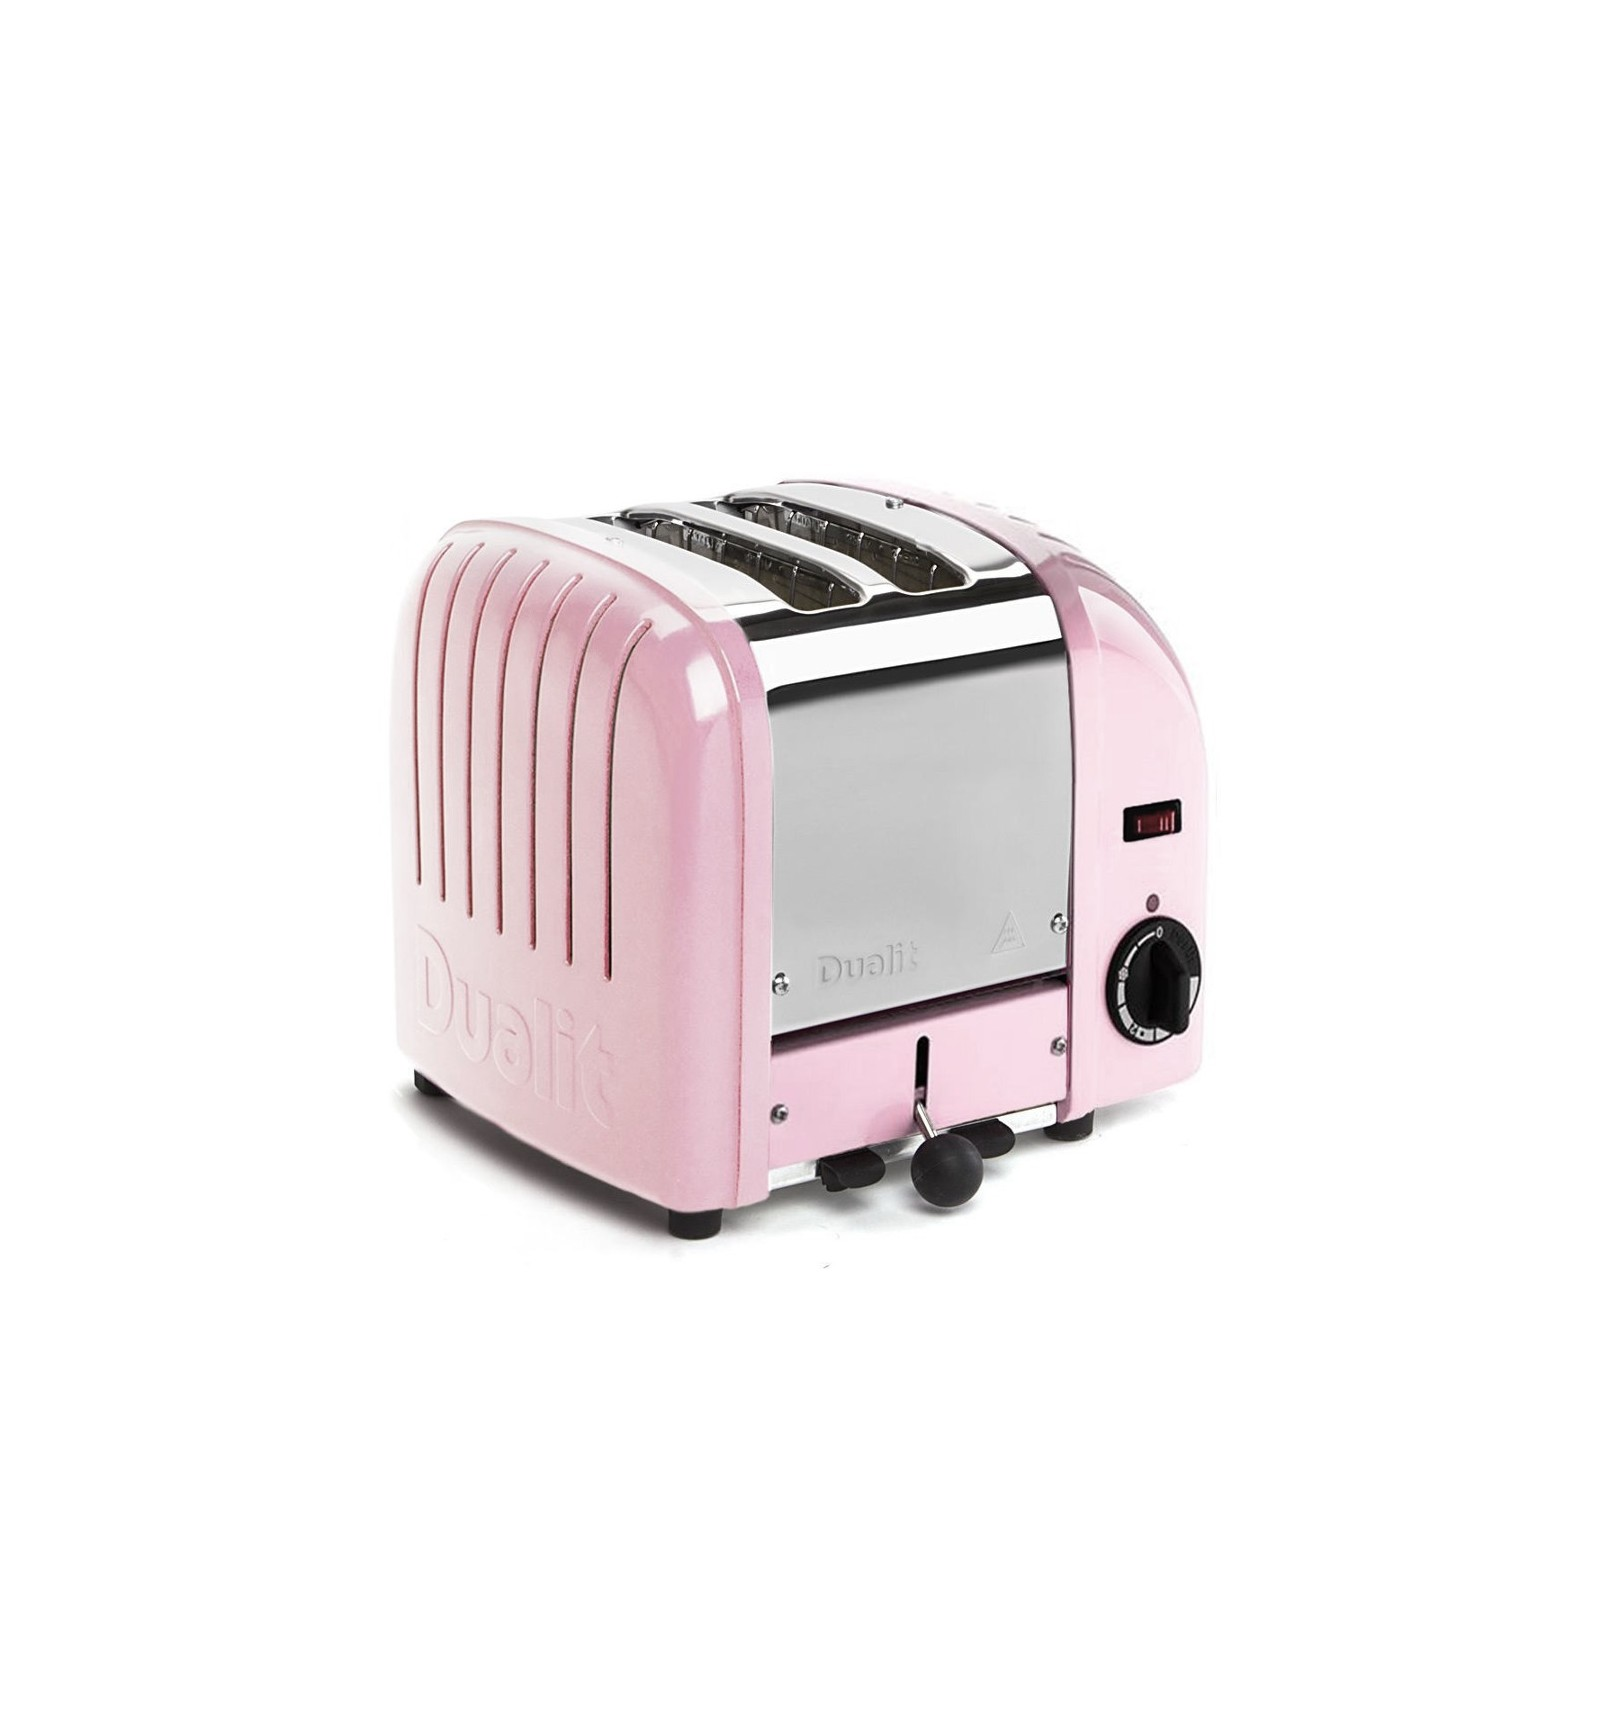 slice amazon two dp best hamilton com rated steel toasters reviewed reviews ultimate bread metal stainless sellers bagel toaster beach